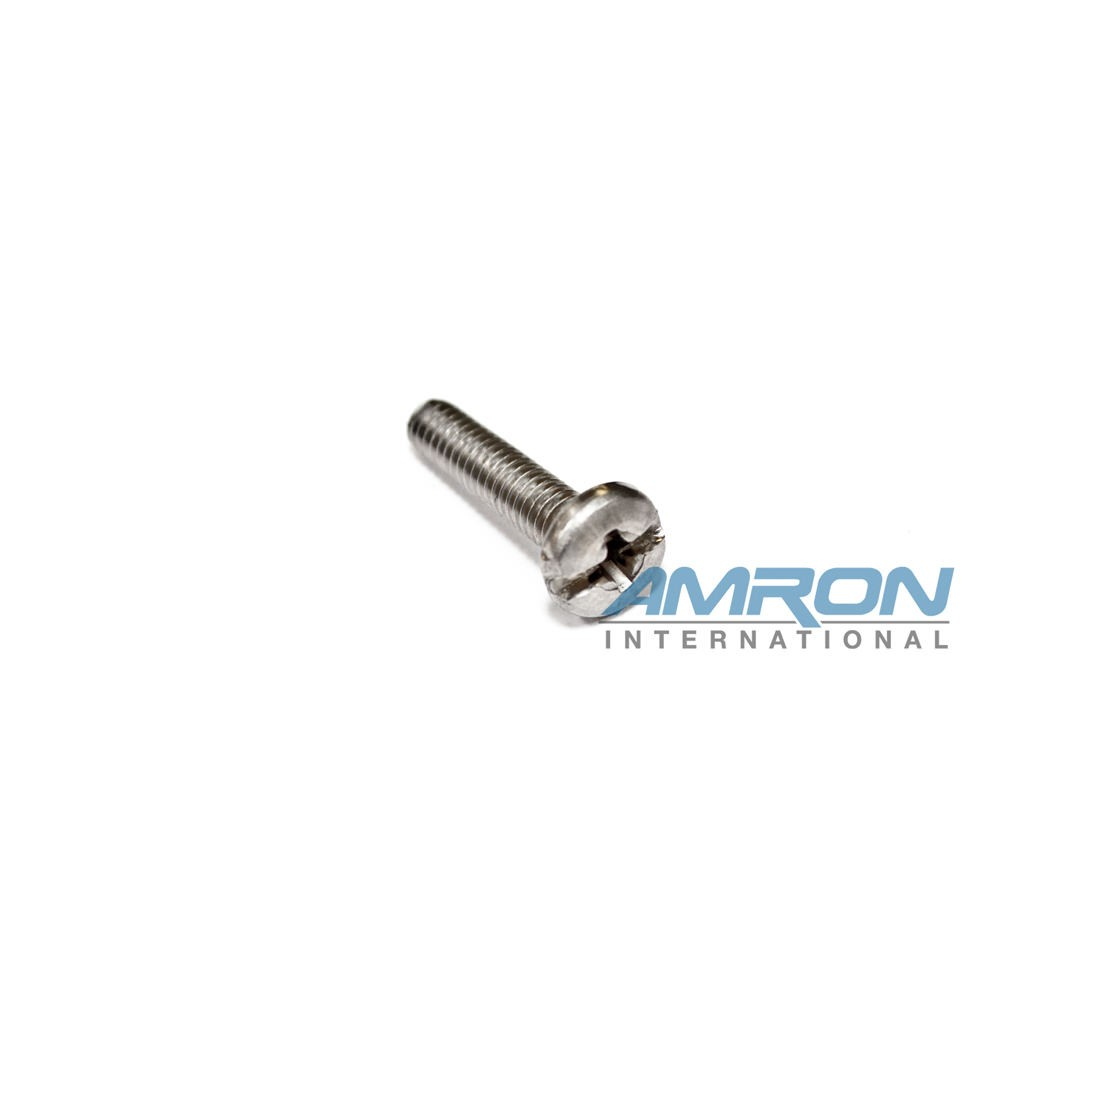 Kirby Morgan 530-045 Screw